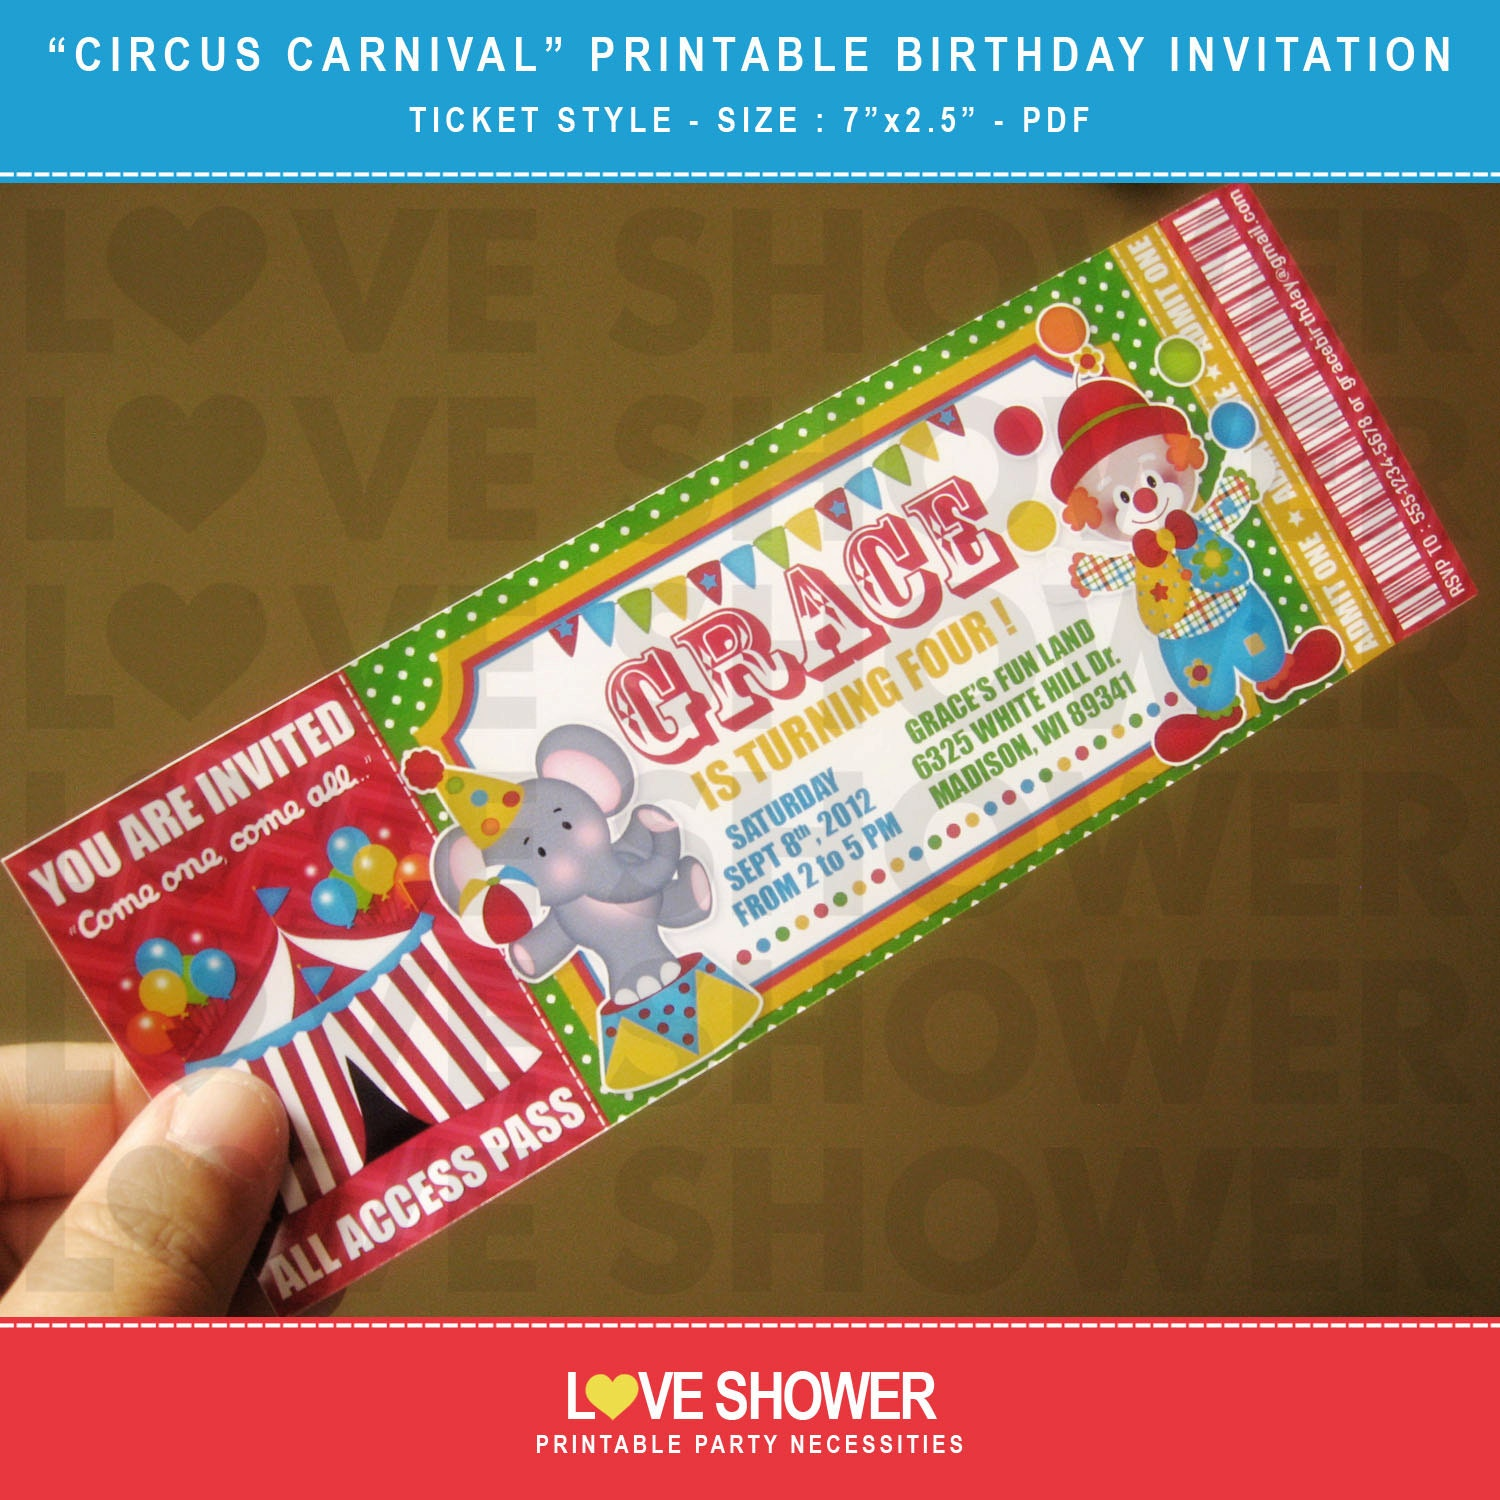 Circus Carnival Printable Birthday Invitation Ticket Style